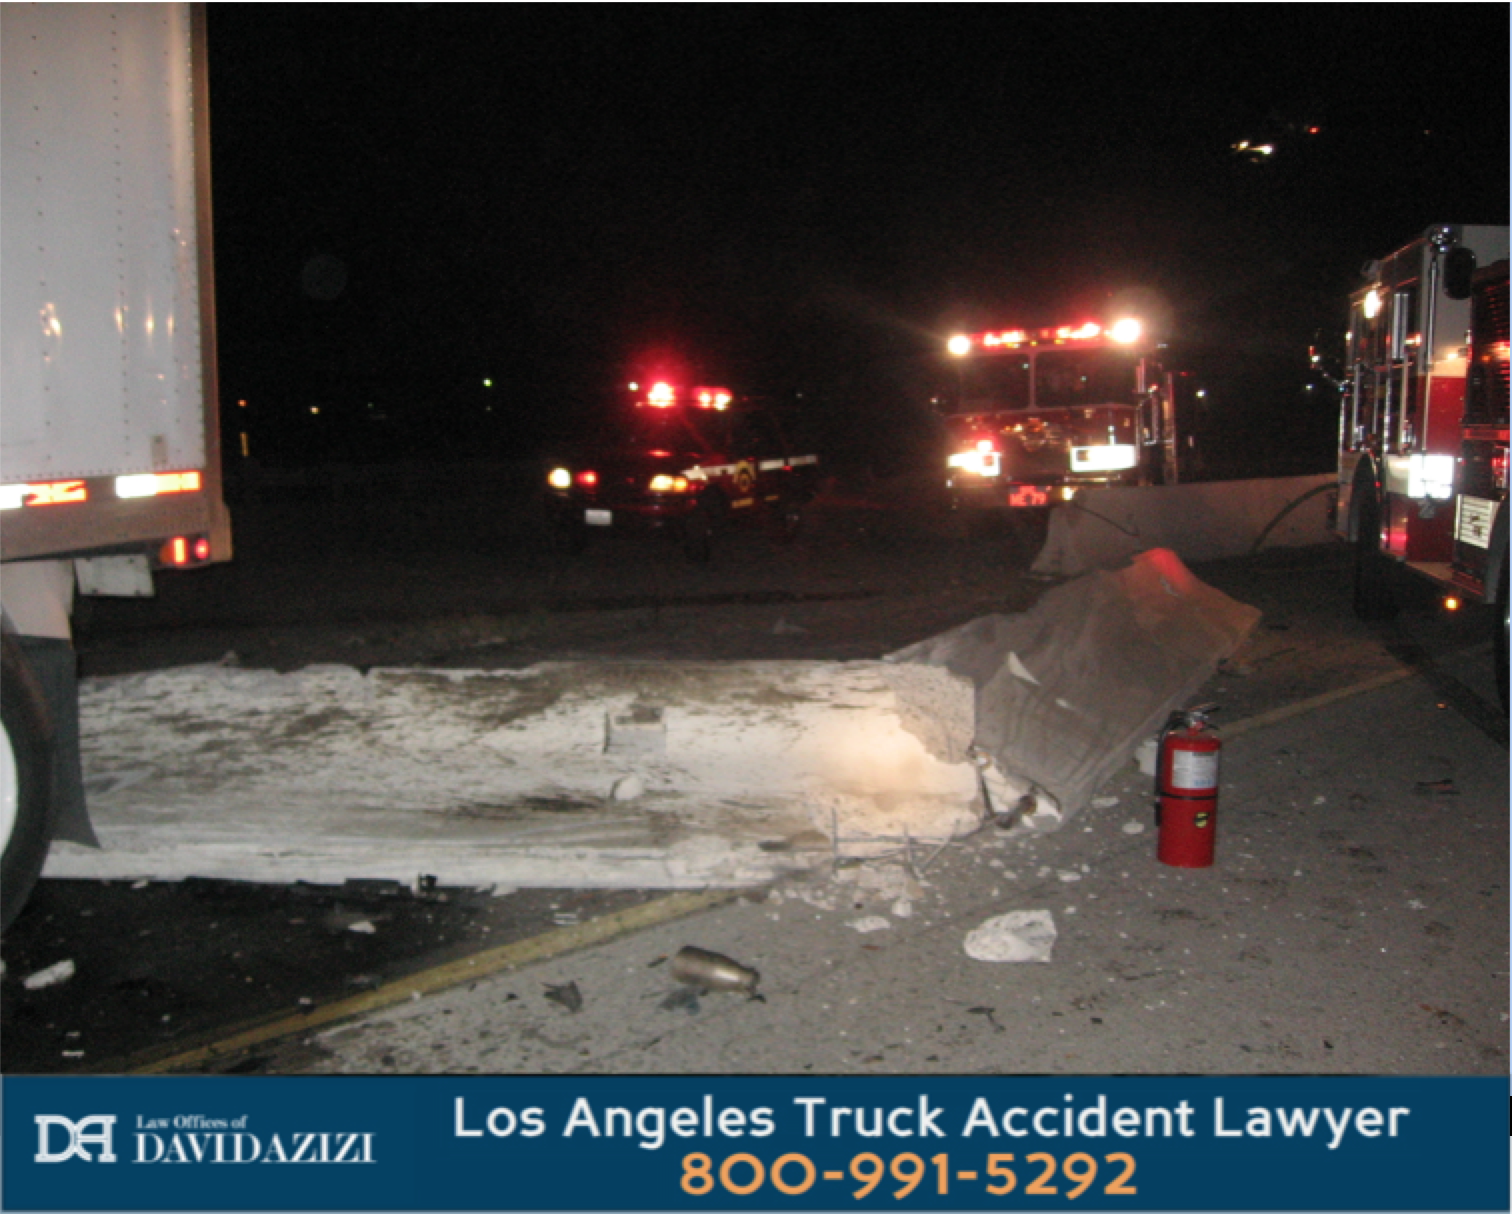 Truck Spill On Freeway - Law Offices of David Azizi